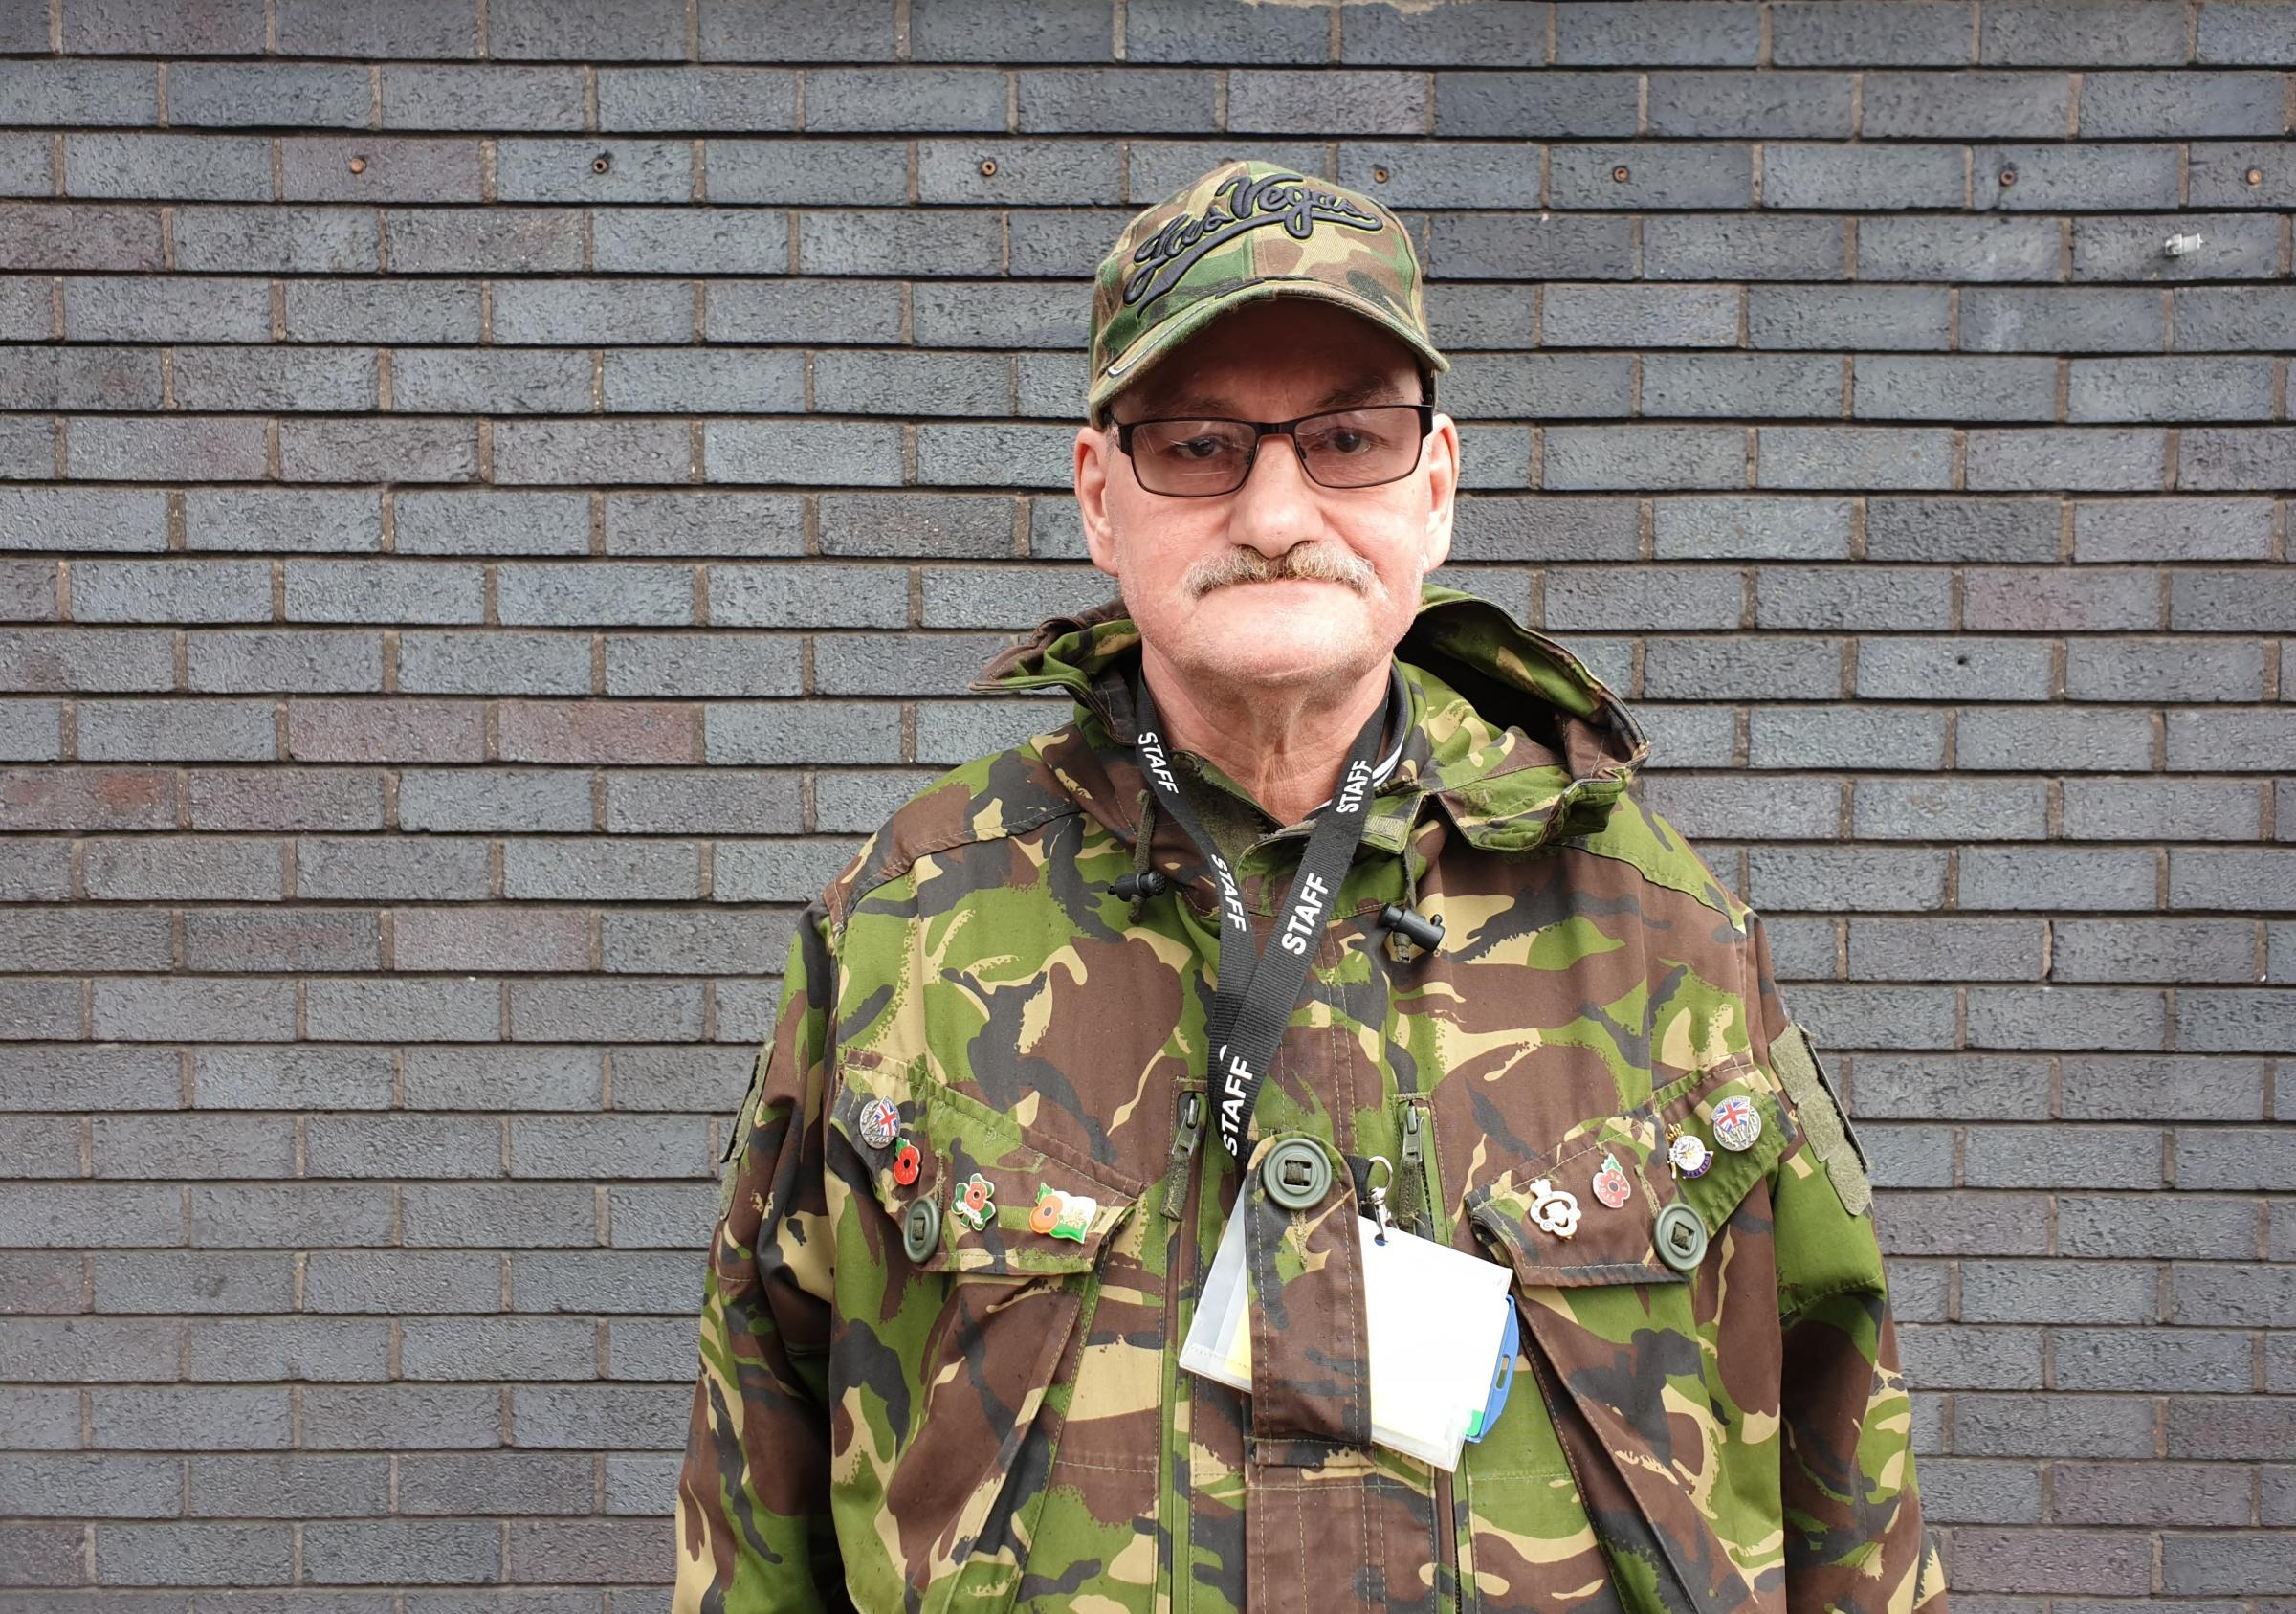 Steven Smith, a former social housing worker, could be made homeless